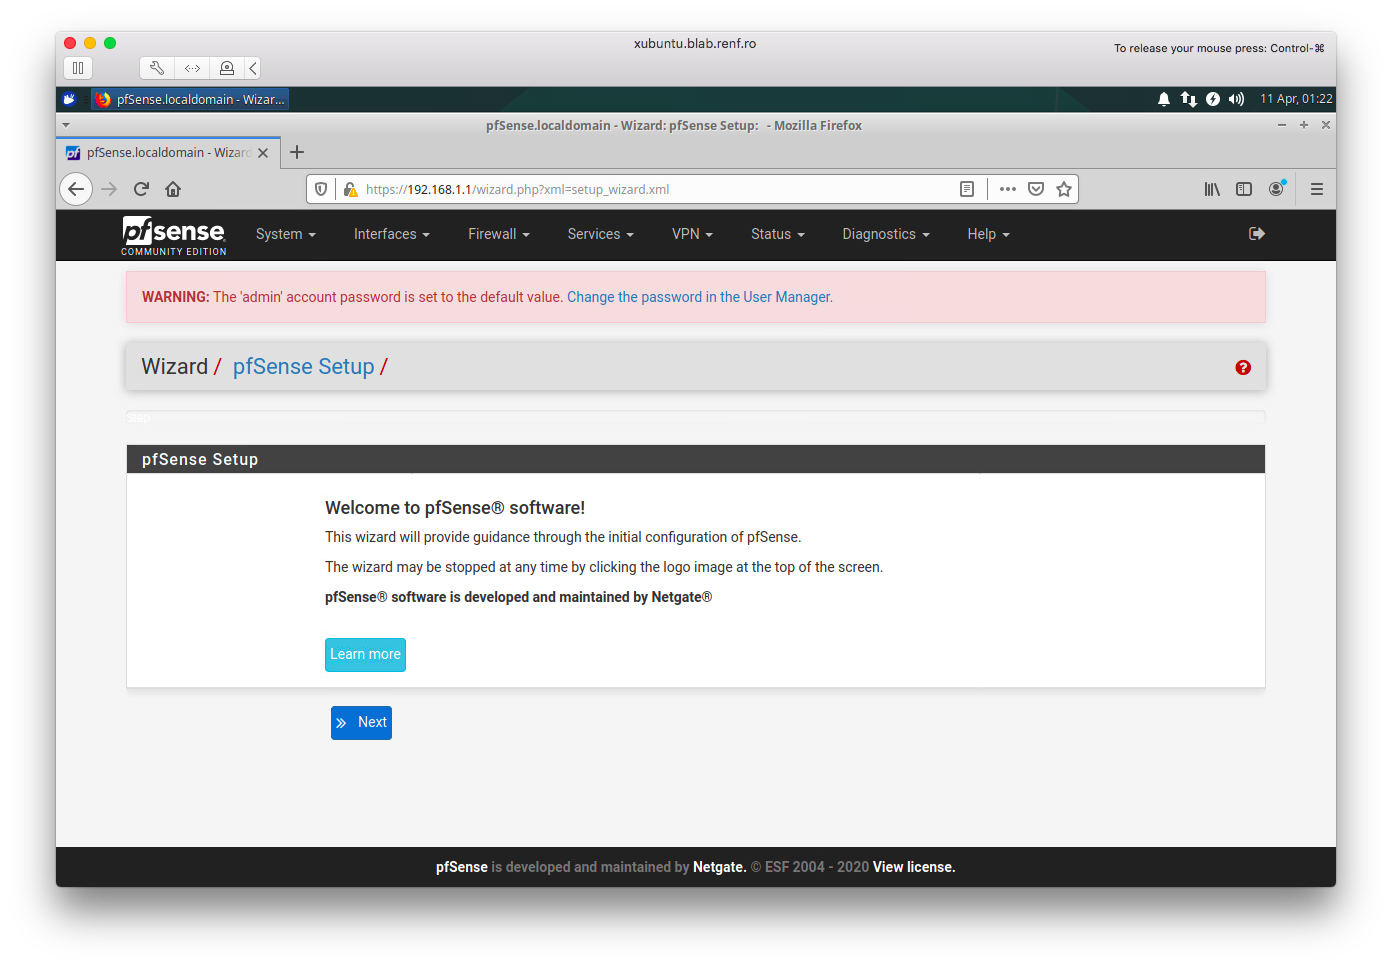 pfSense Welcome Page